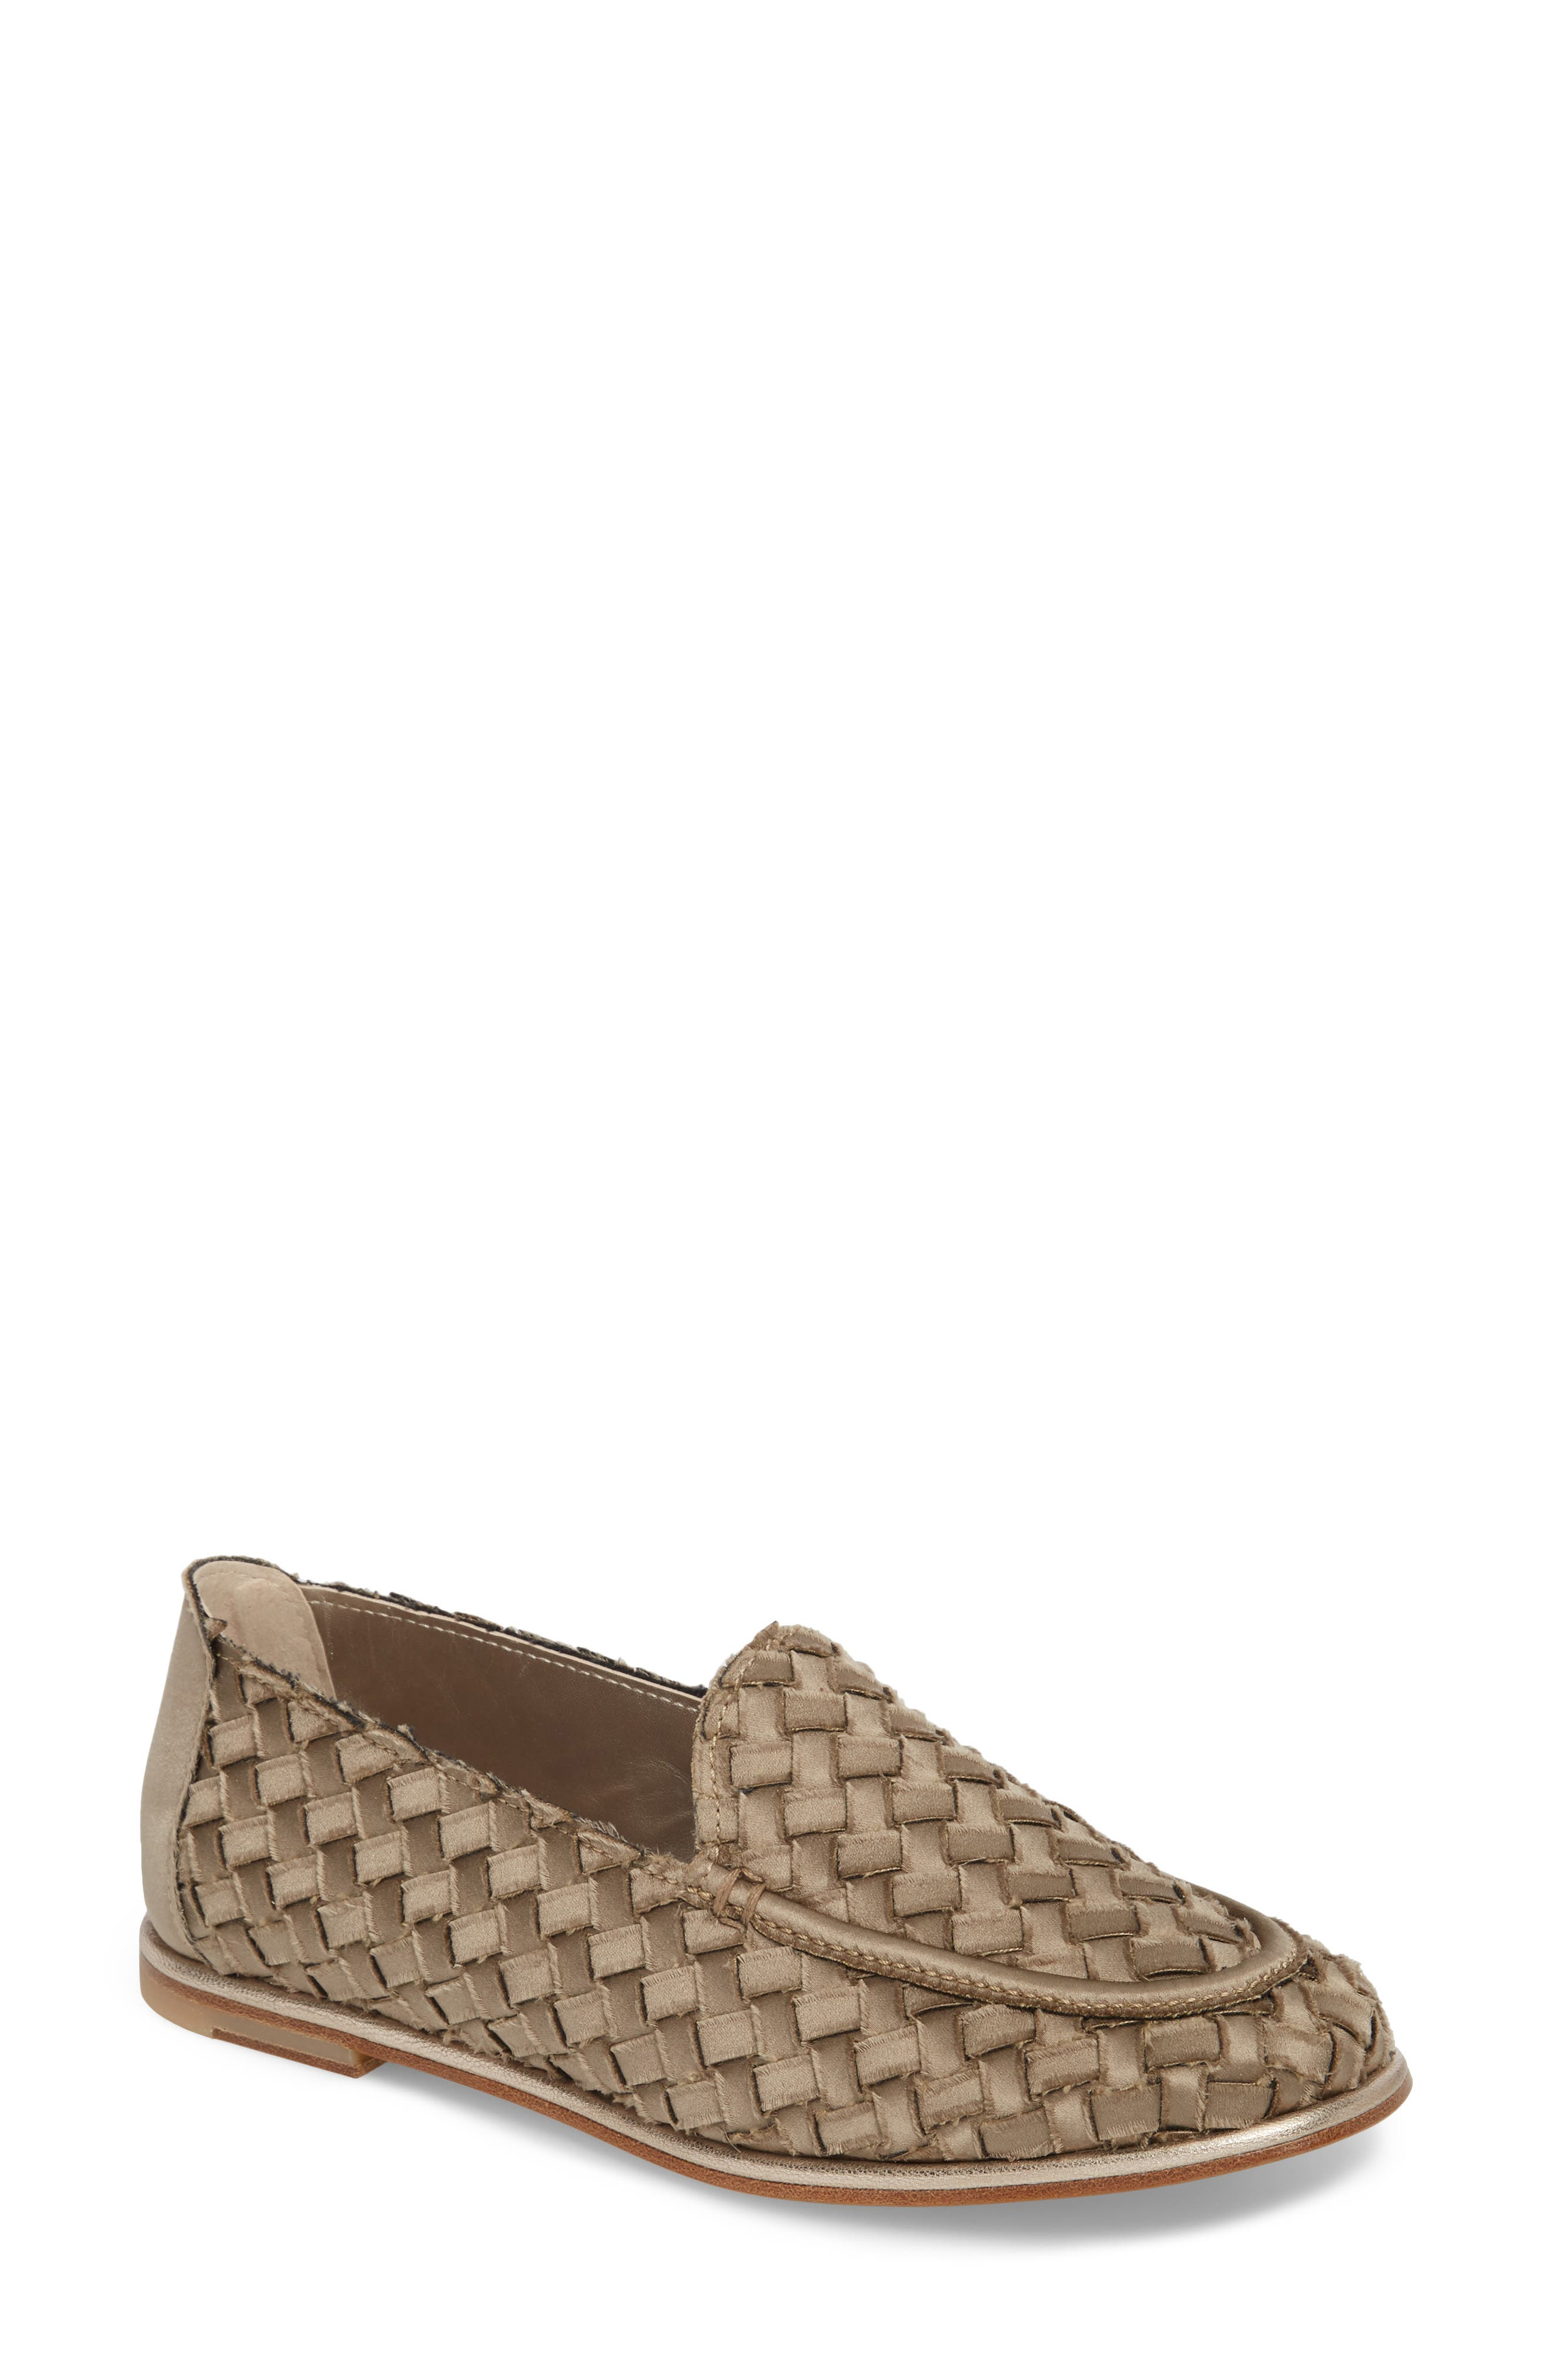 Woven Loafer,                             Main thumbnail 1, color,                             TAUPE SATIN